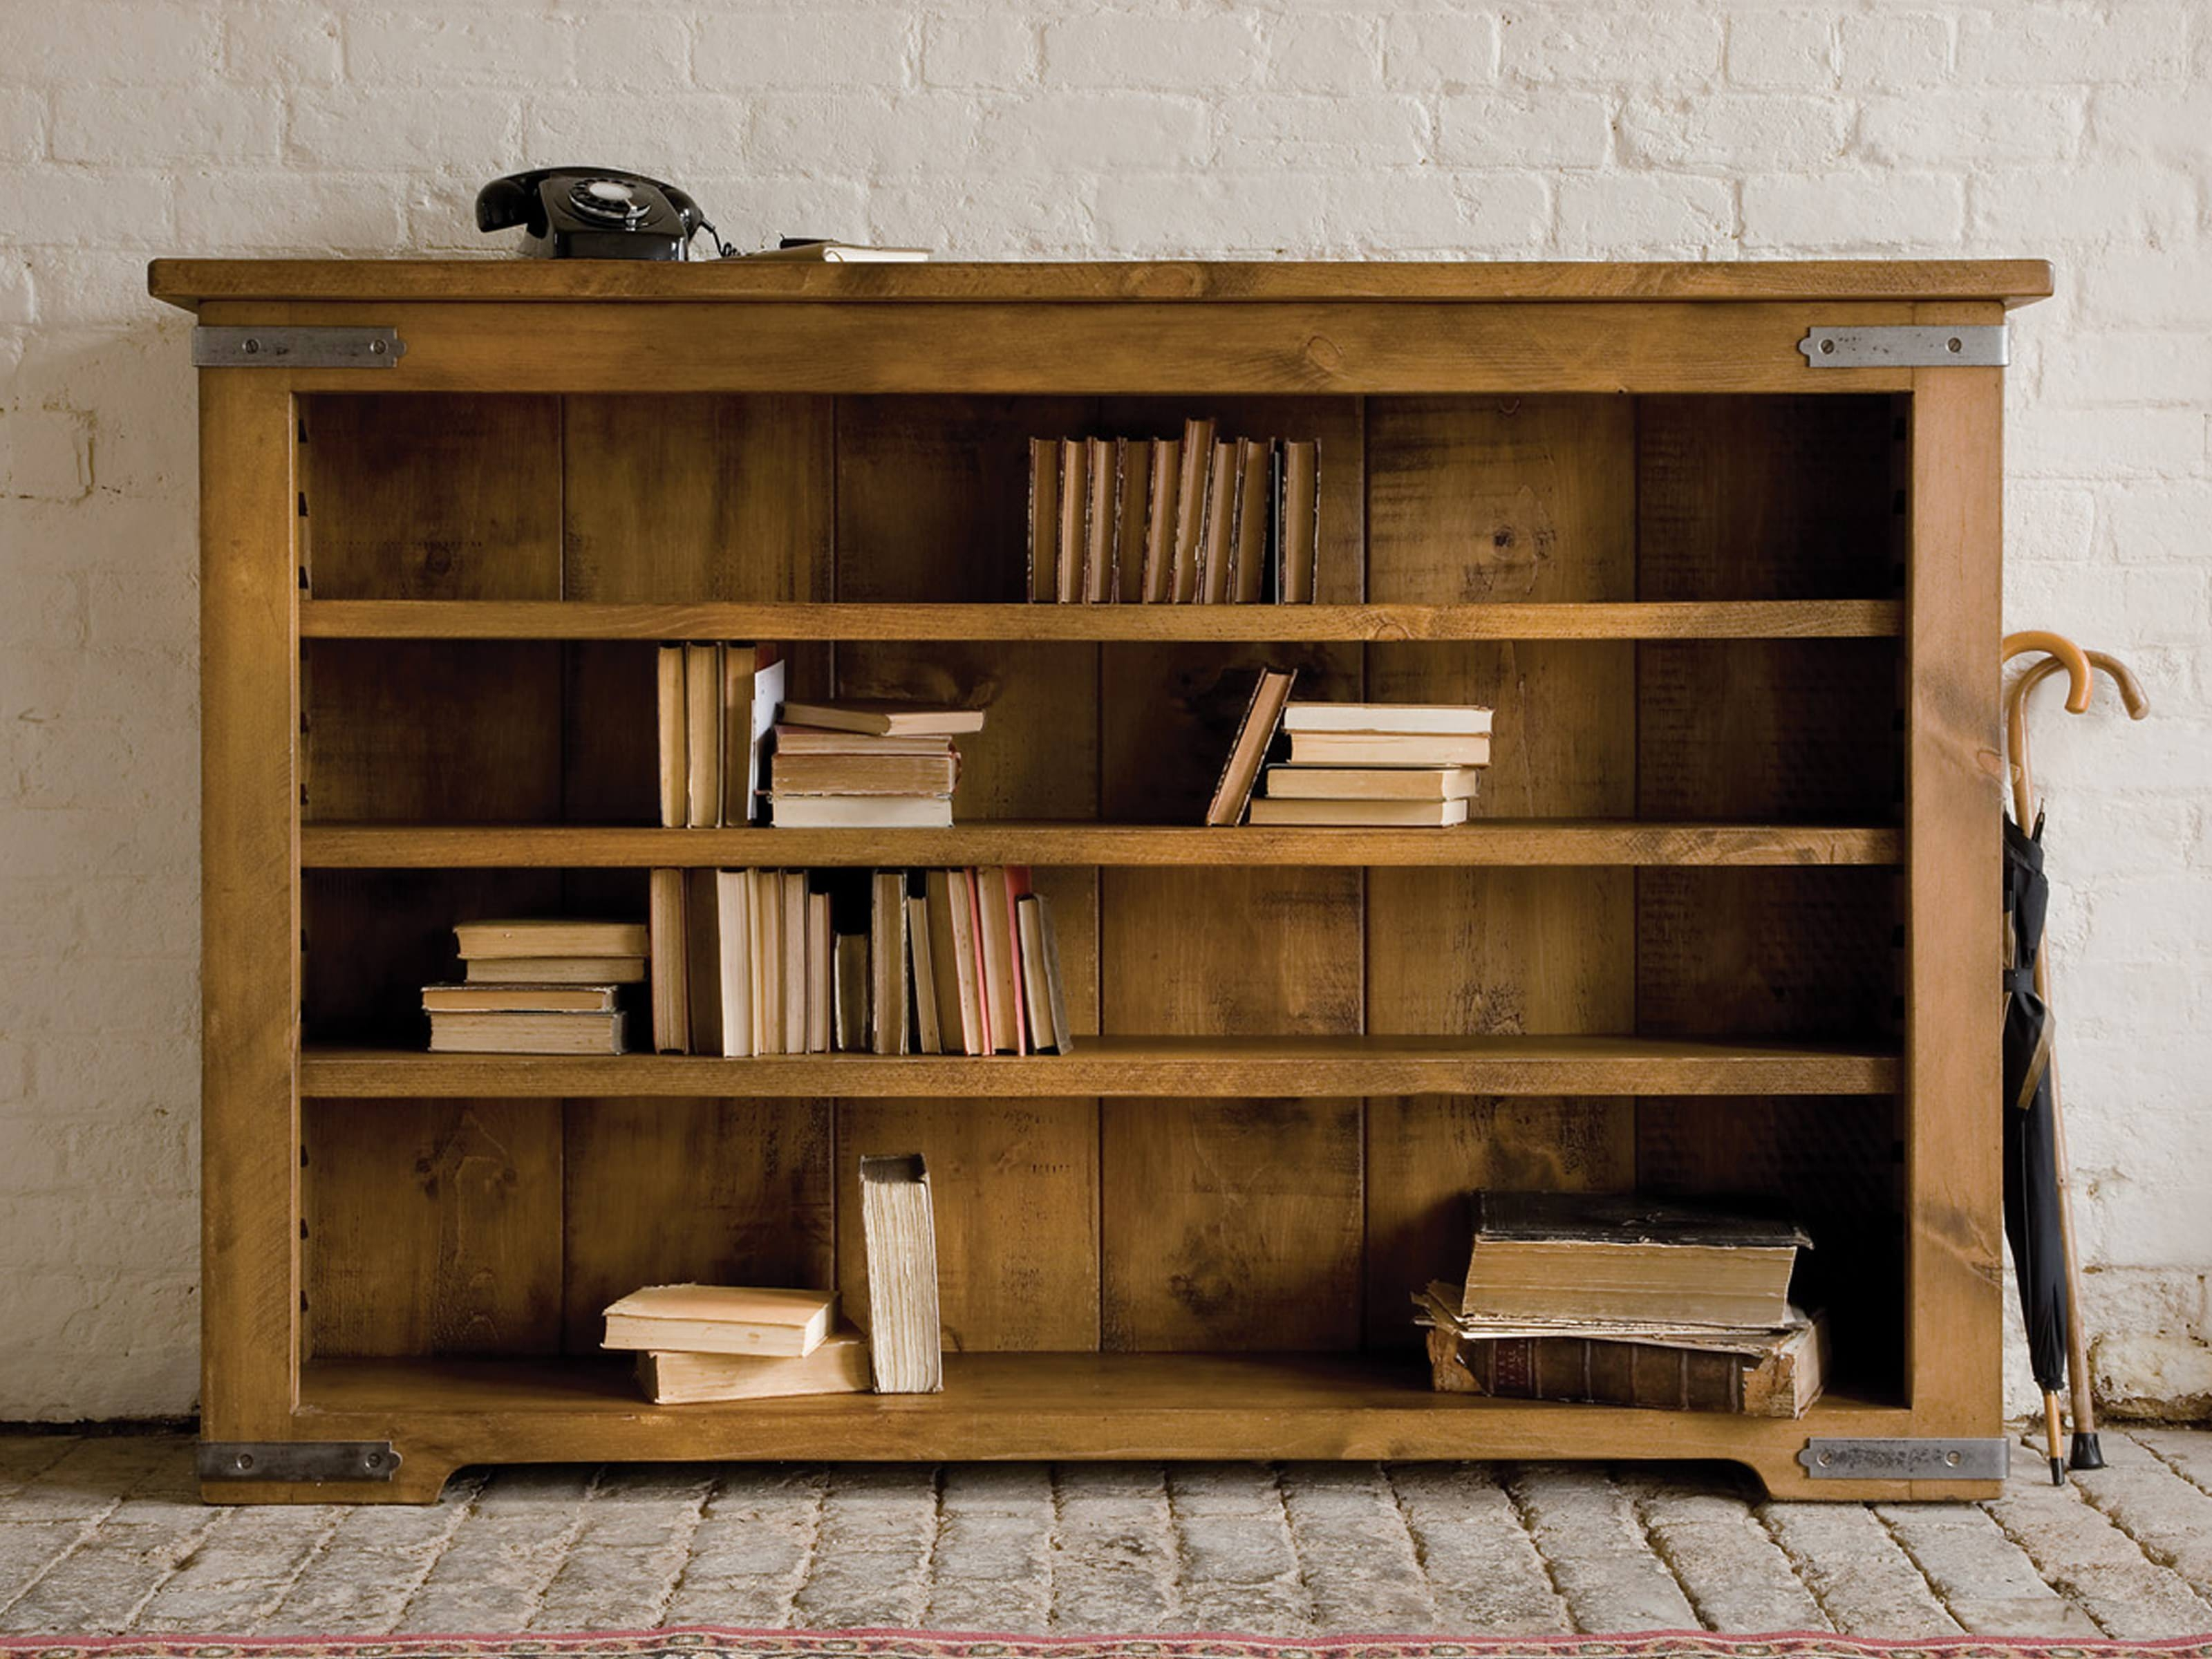 Terrific Unfinished Oak Low Bookcase Over Stones Floors And White With Regard To Solid Wood Bookcases (#14 of 15)